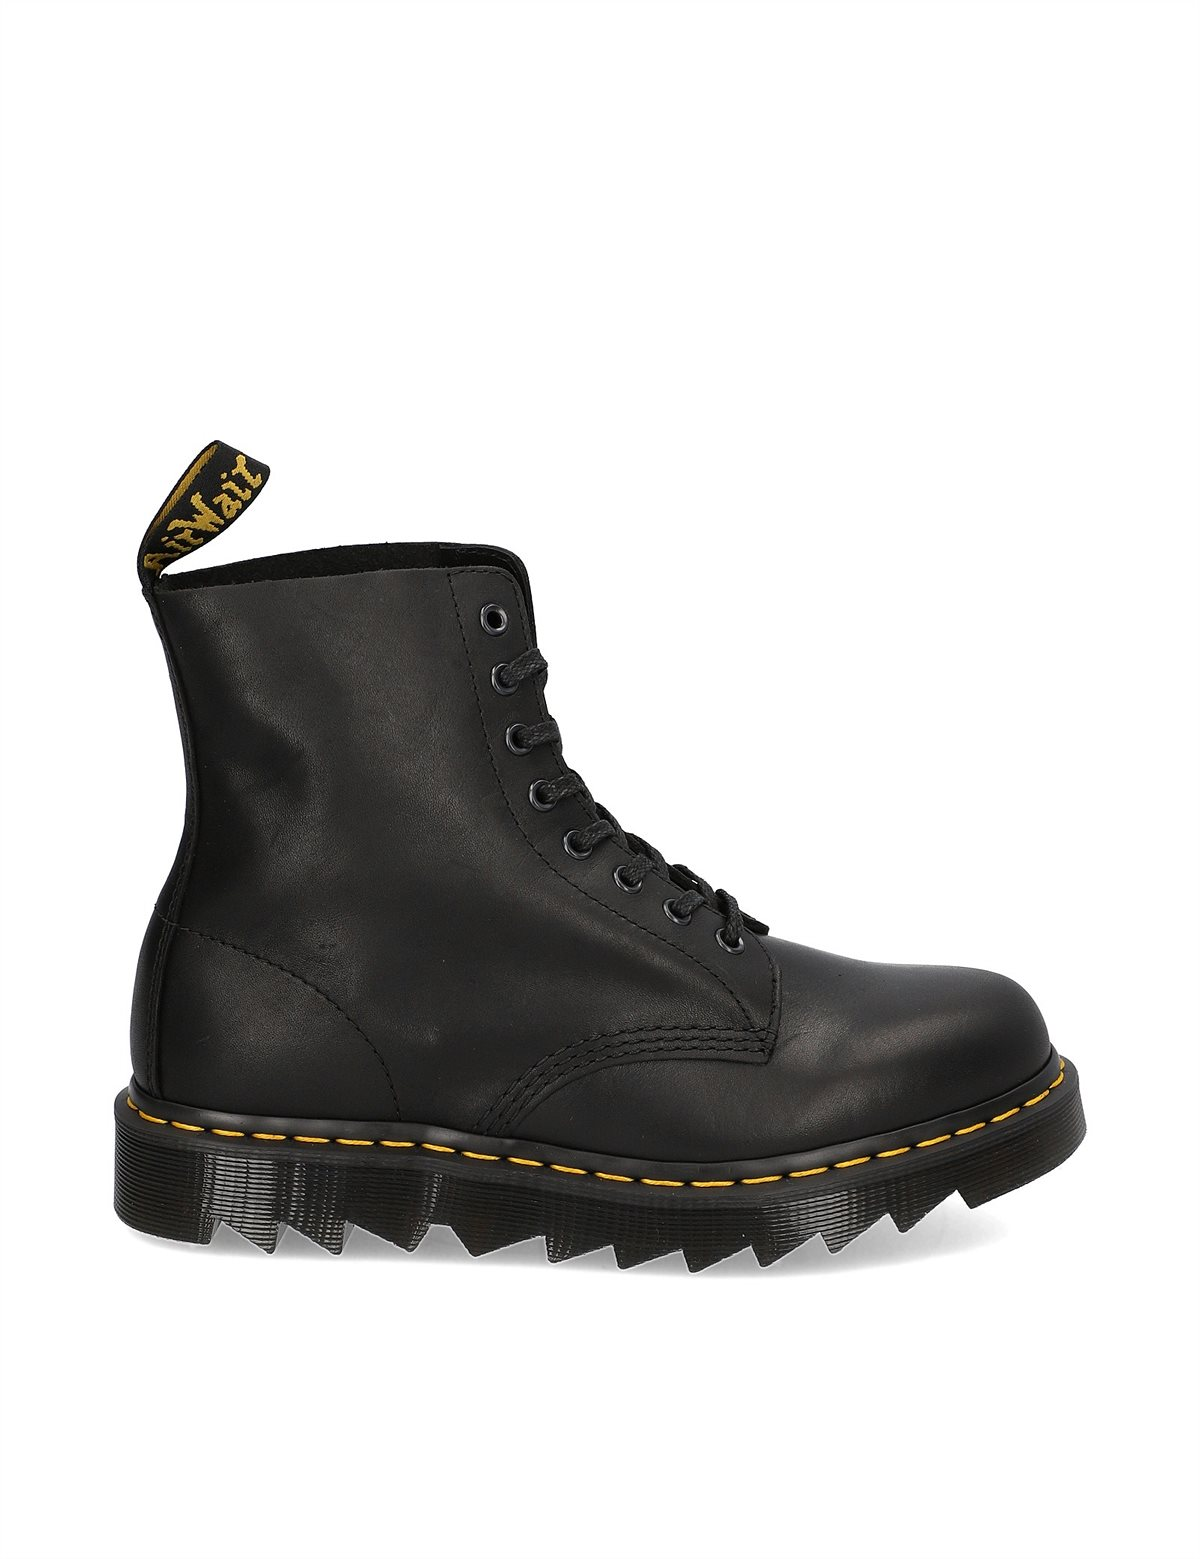 HUMANIC 38 Dr. Martens mit Zackensohle EUR 190 2623510330